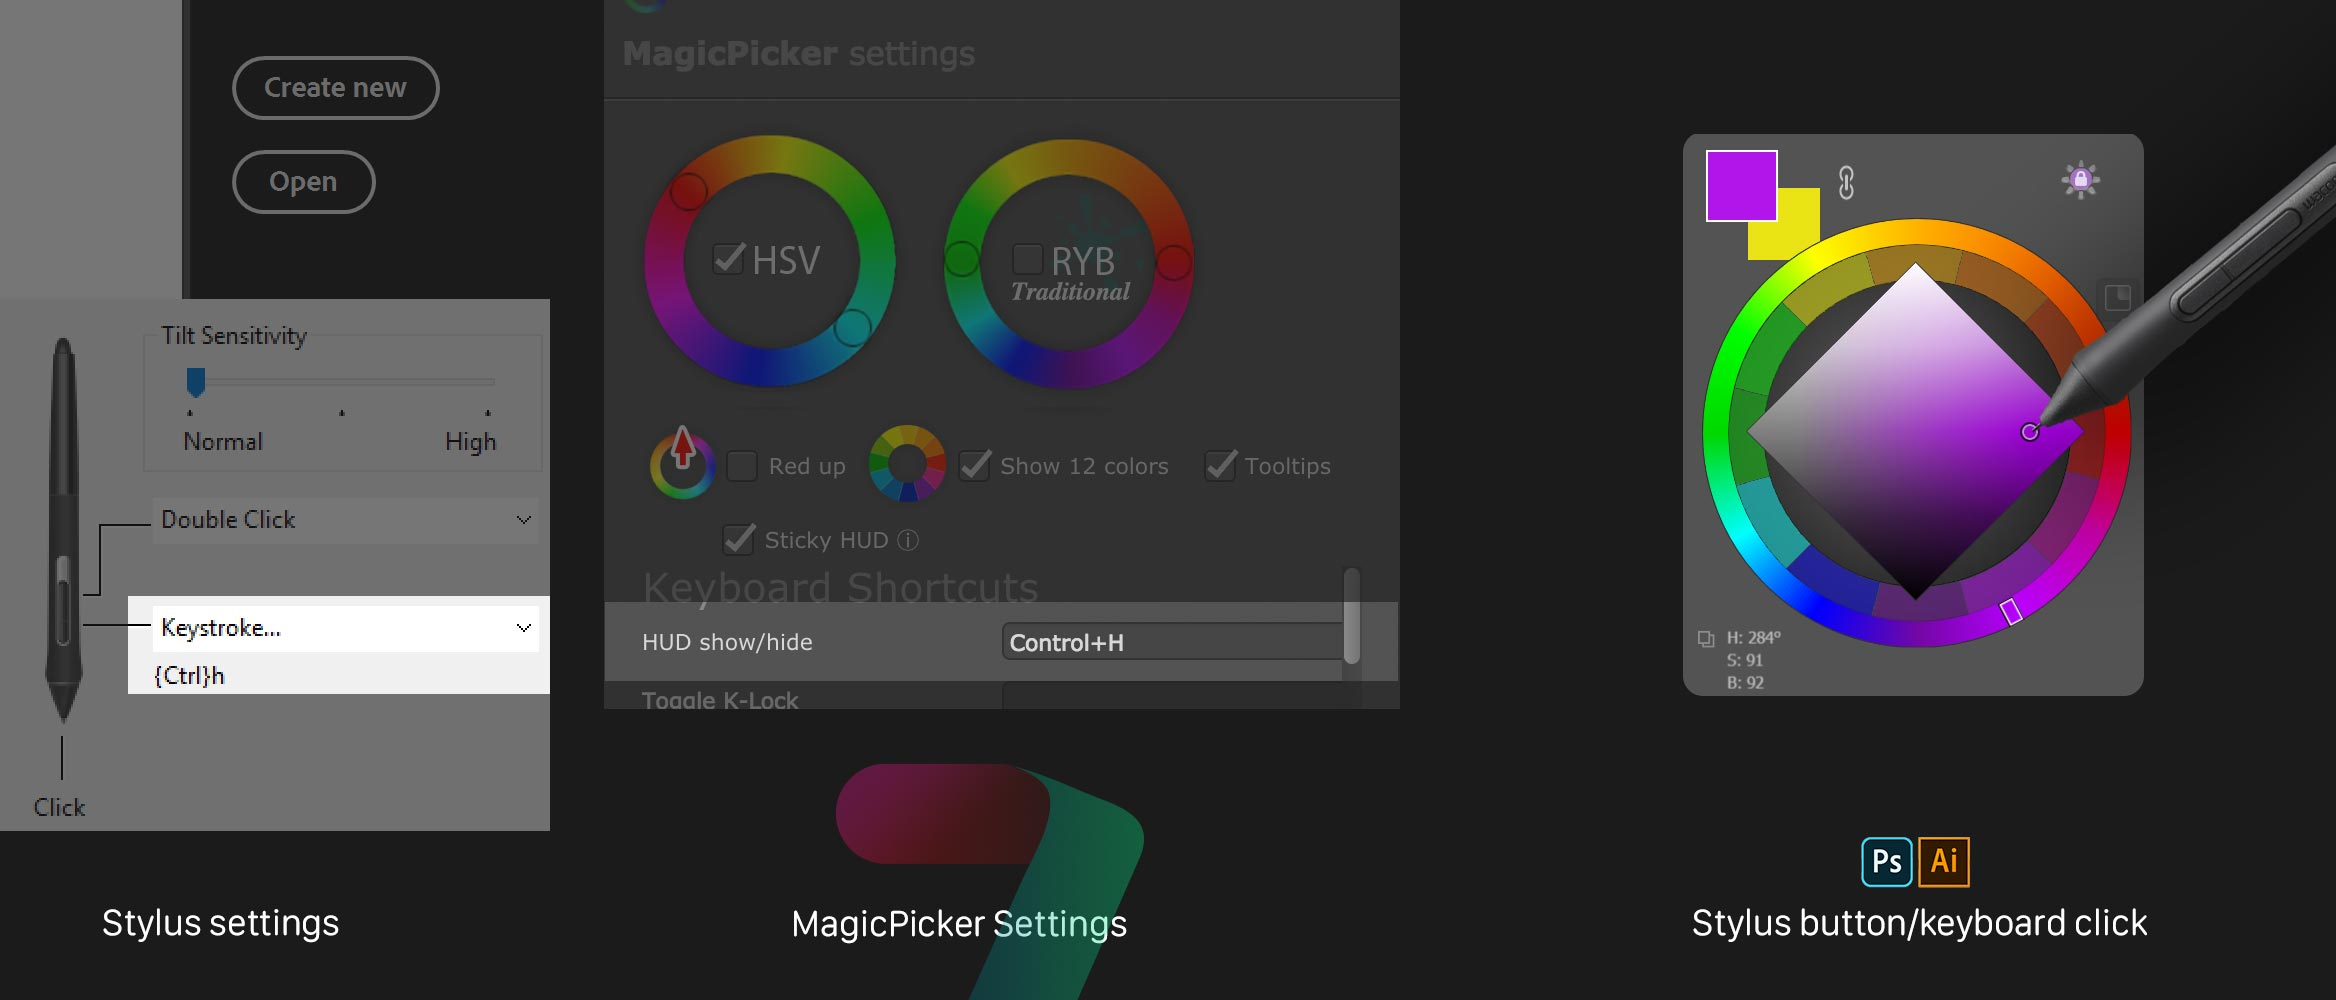 MagicPicker Color Wheel HUD popup setup in Photoshop and Illustrator (Keyboard and Stylus settings)